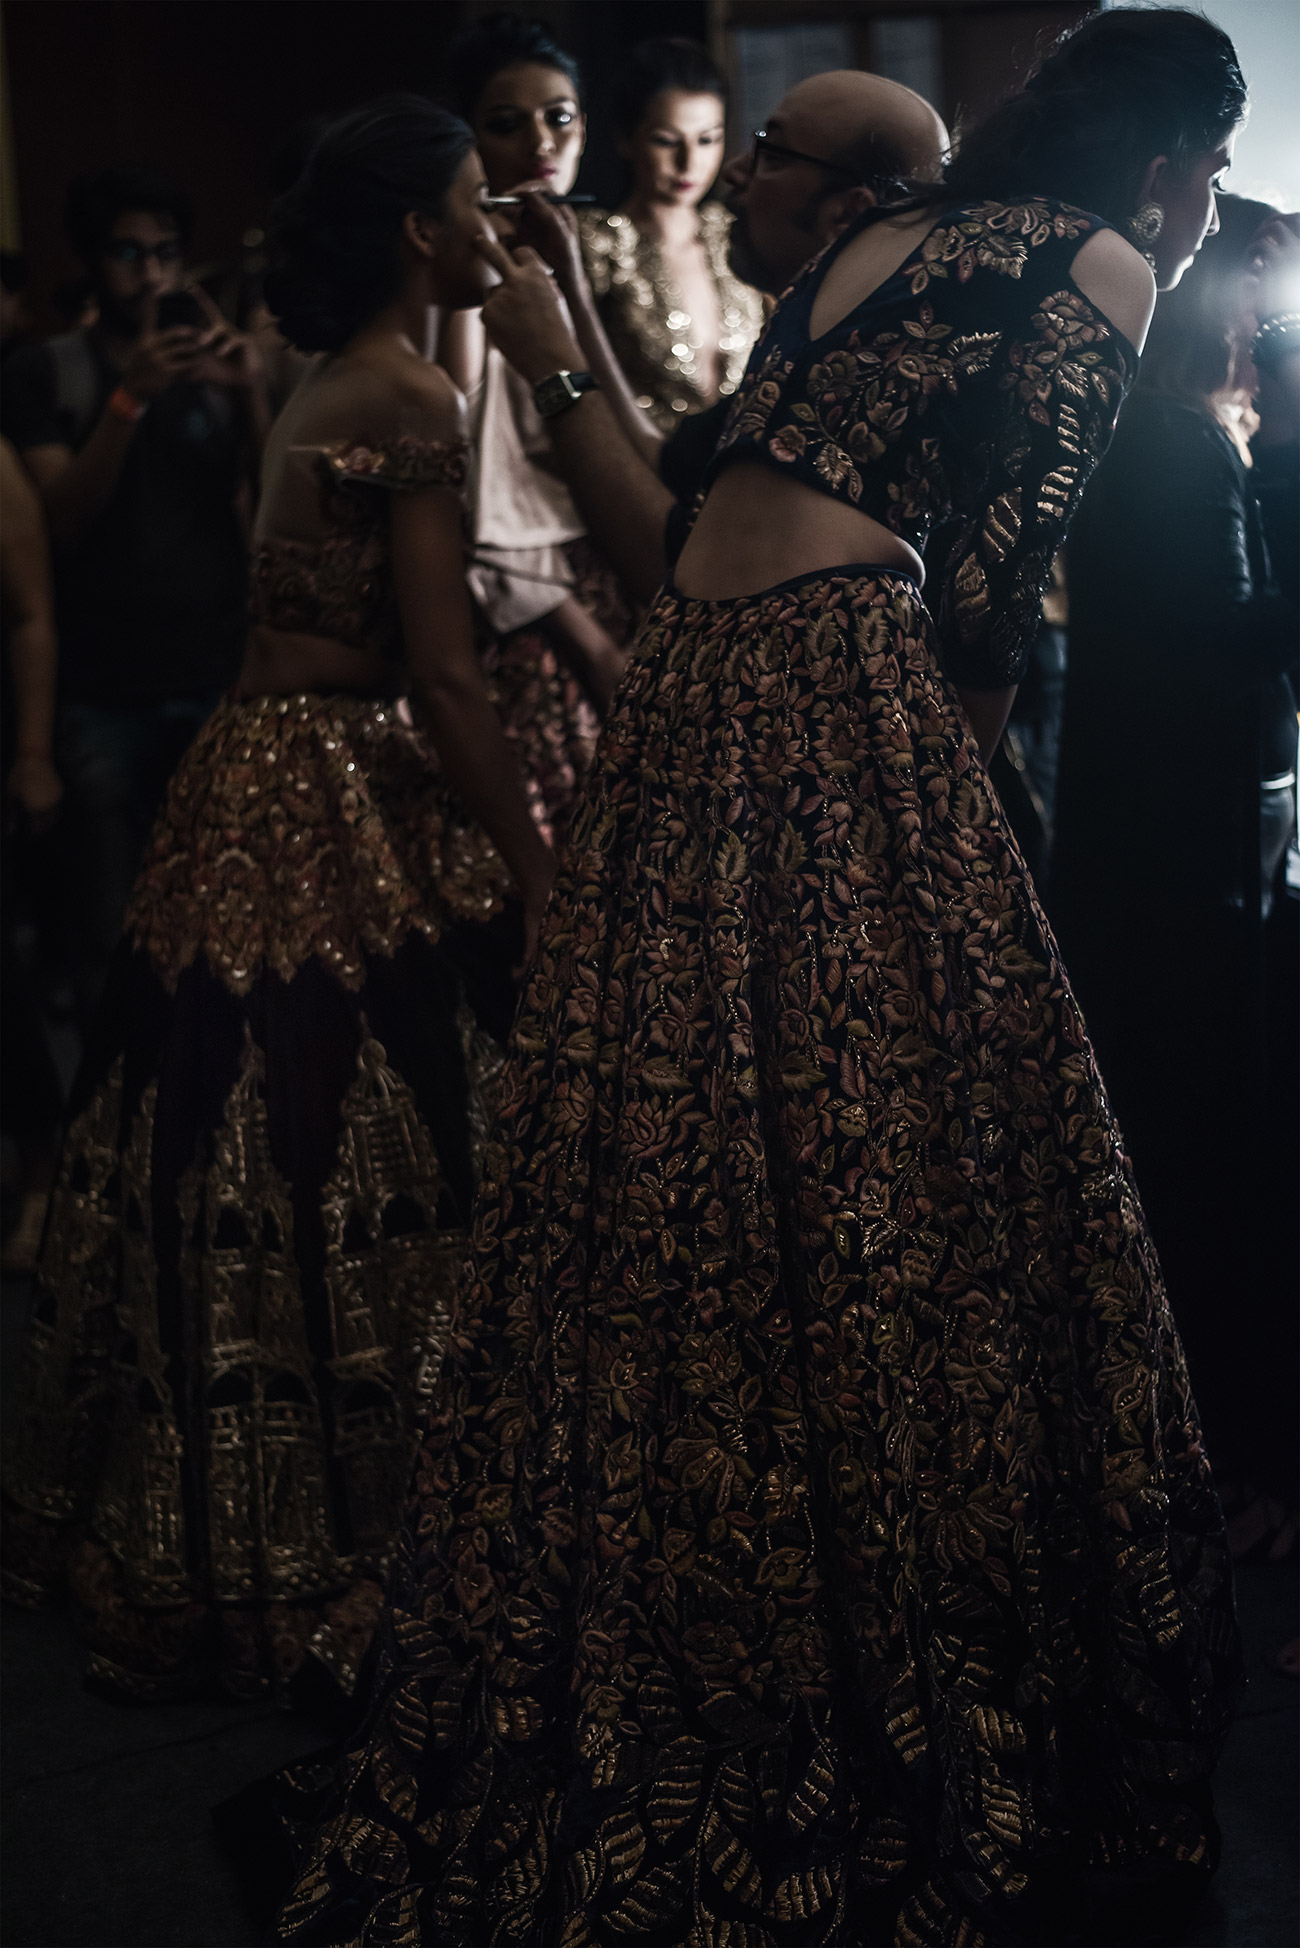 Backstage FDCI India Couture Week 2016 Photo by RAWKY KSH 13